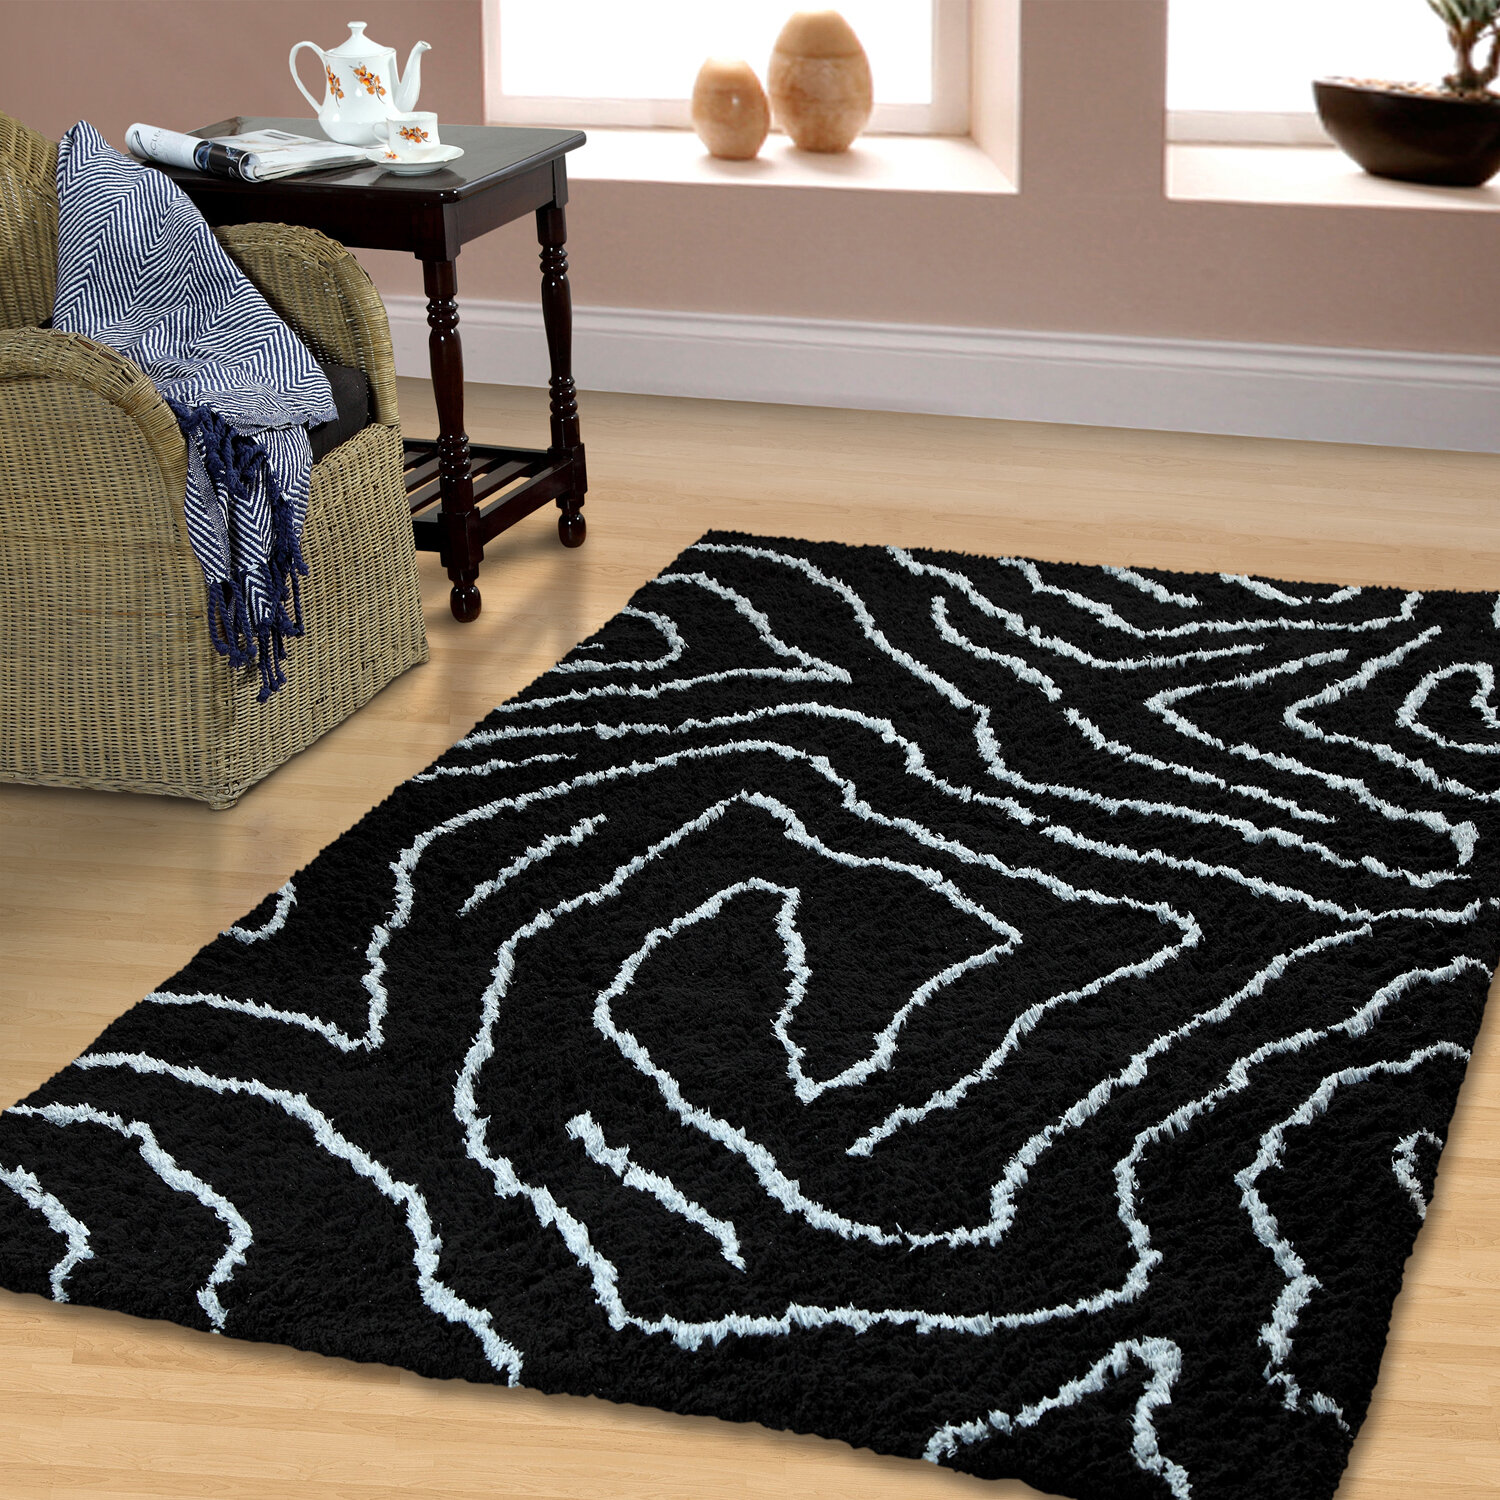 Wrought Studio Weisend Abstract Handmade Black Silver Area Rug Wayfair